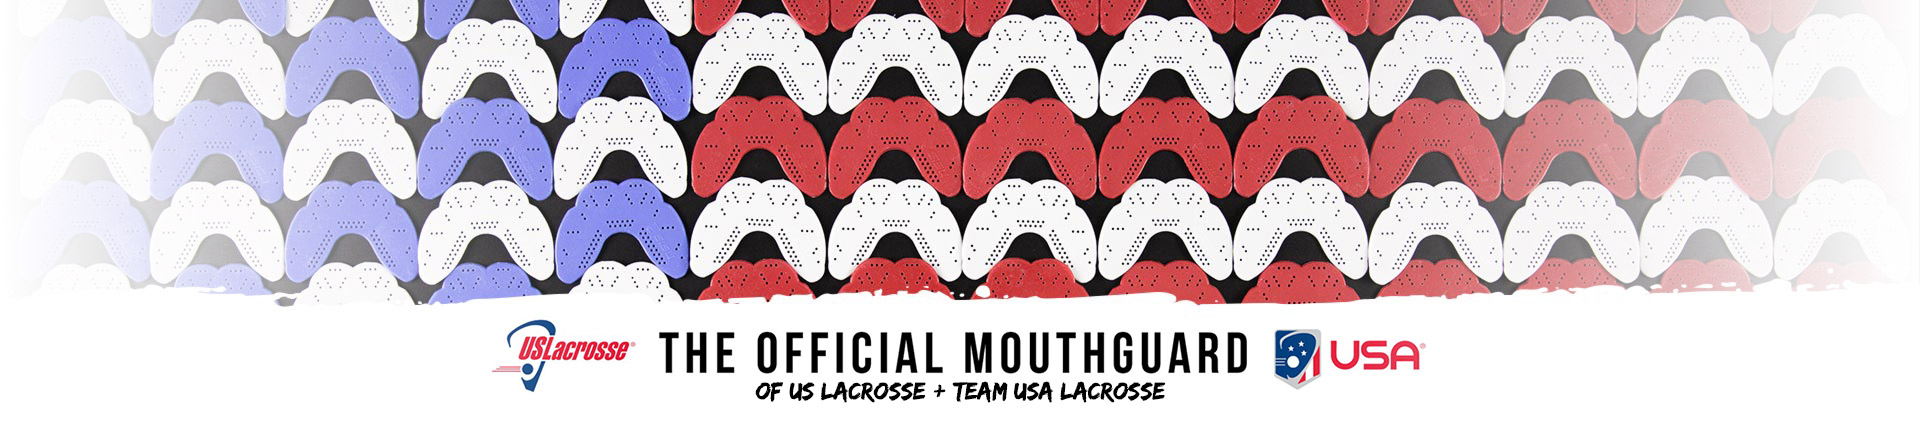 Official Mouthguard USA Lacrosse Team